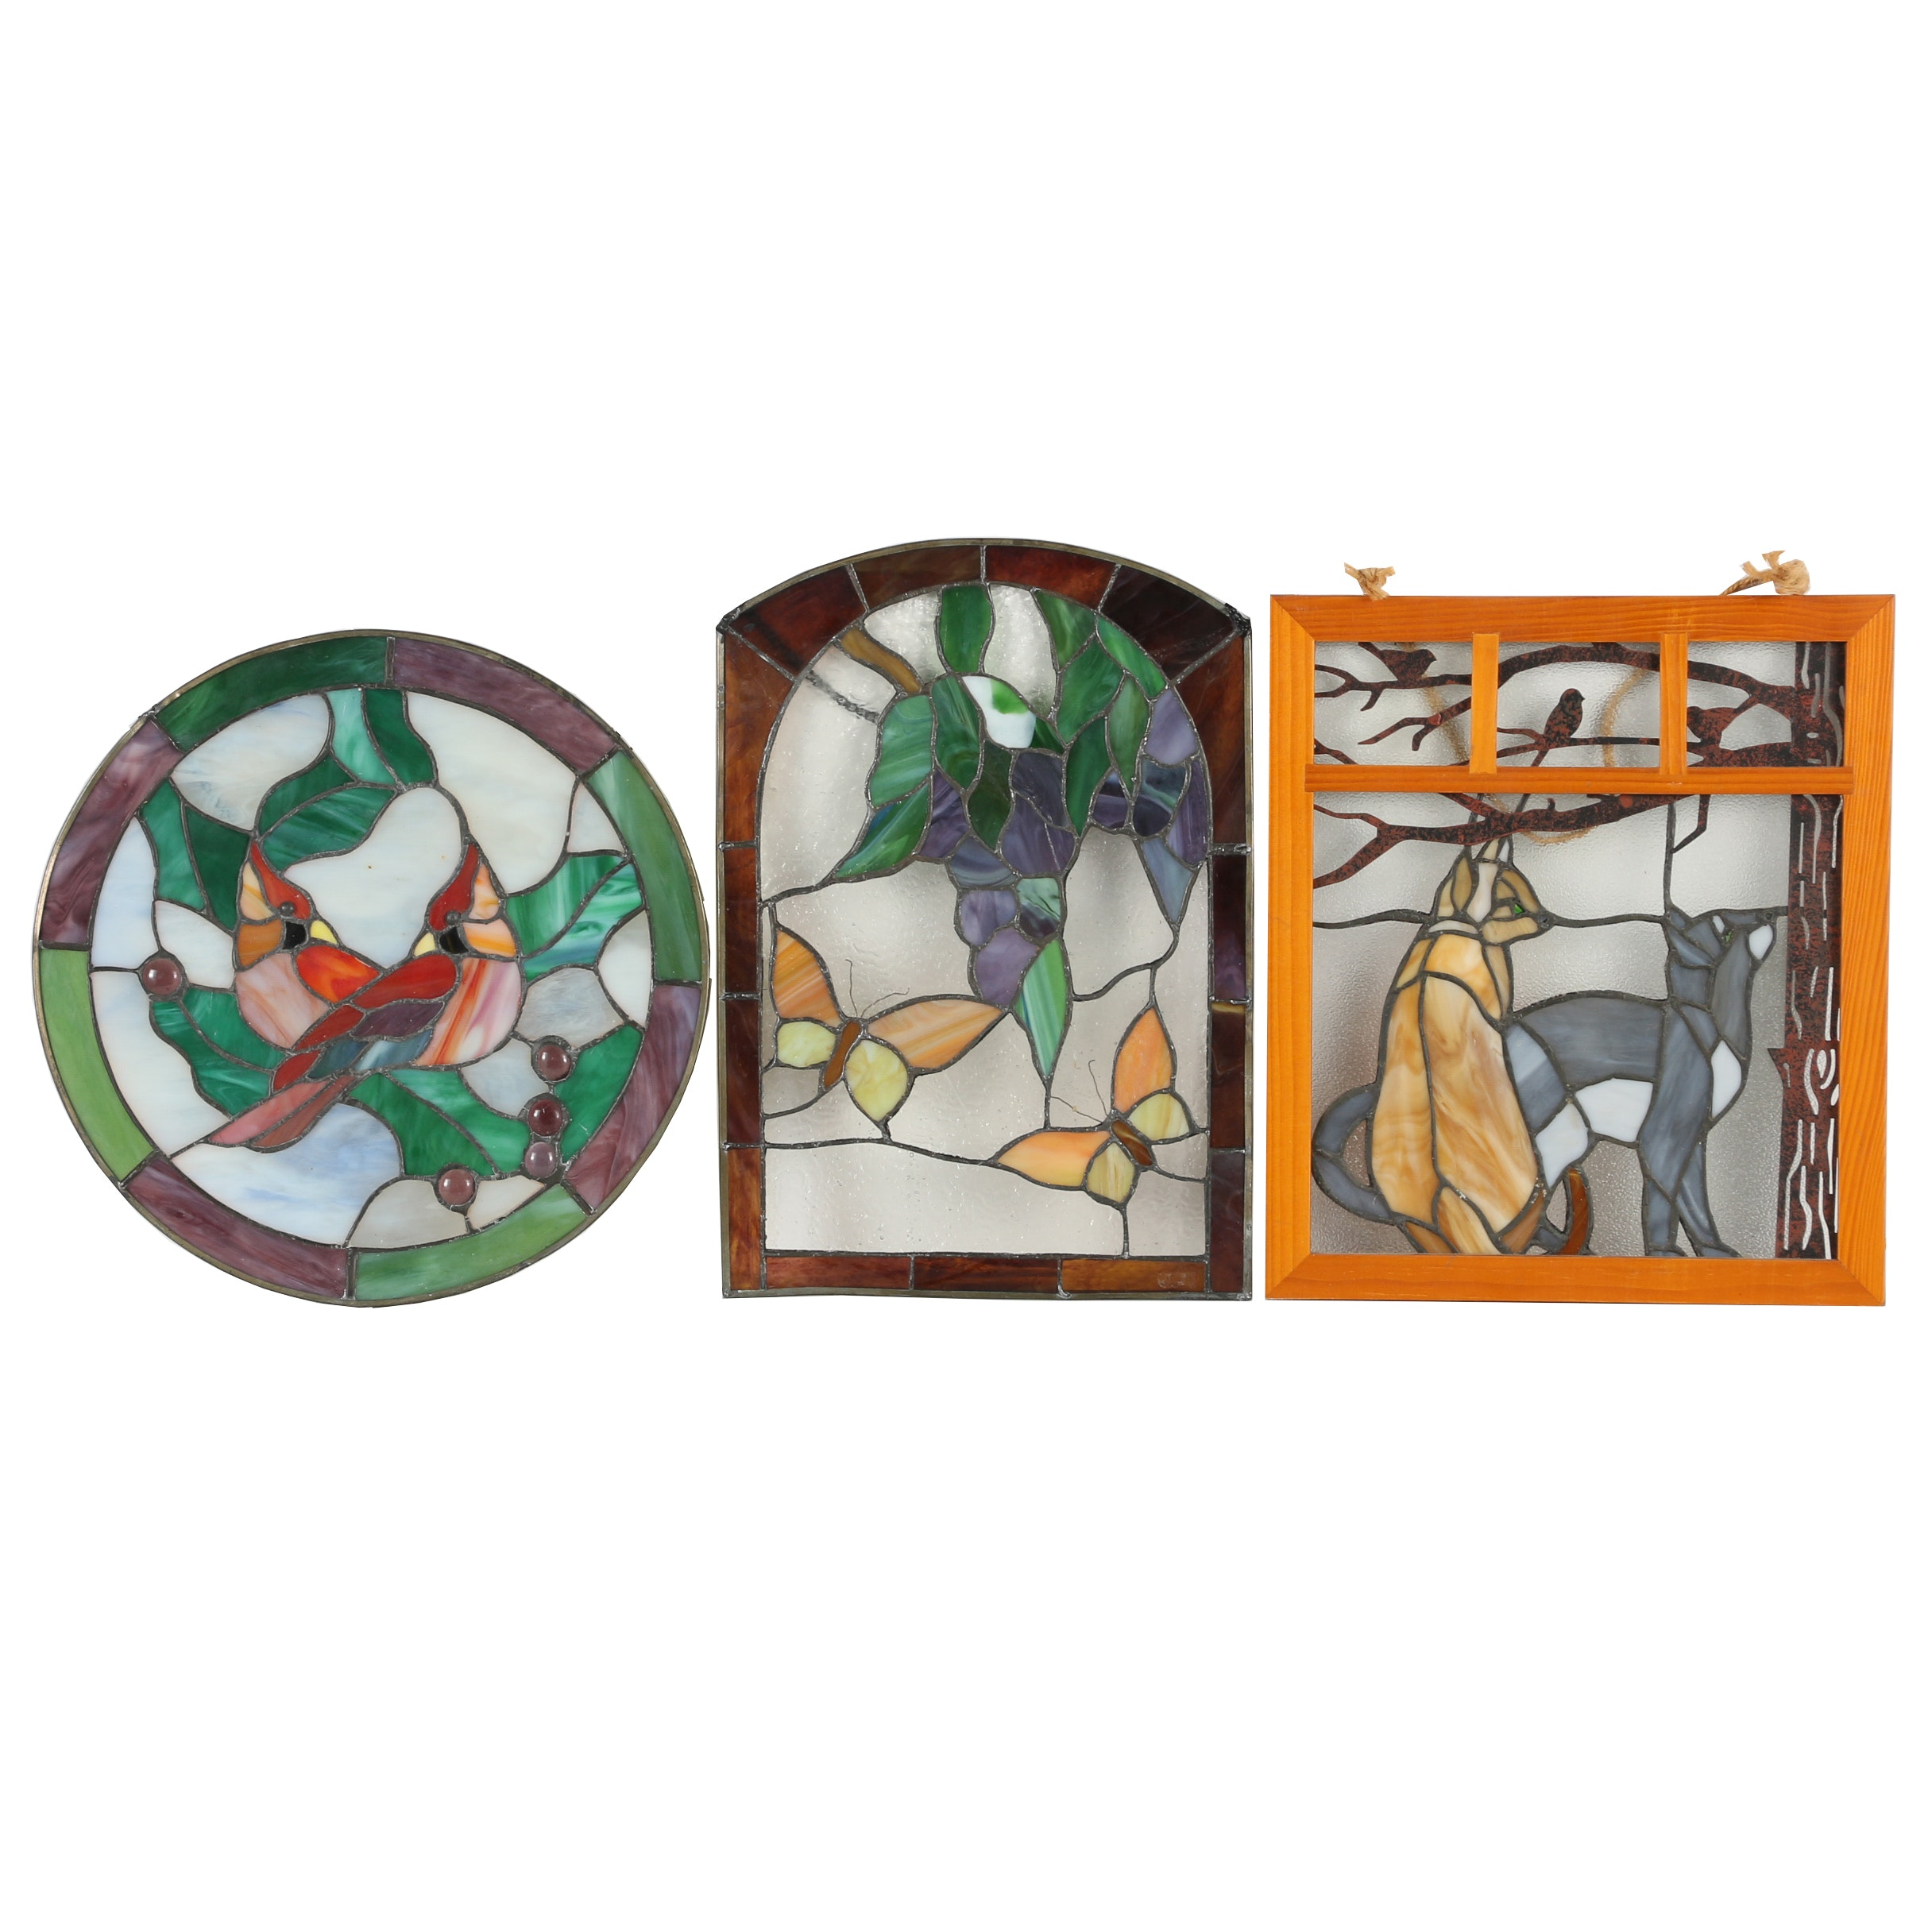 Stained Glass Wall Hangings